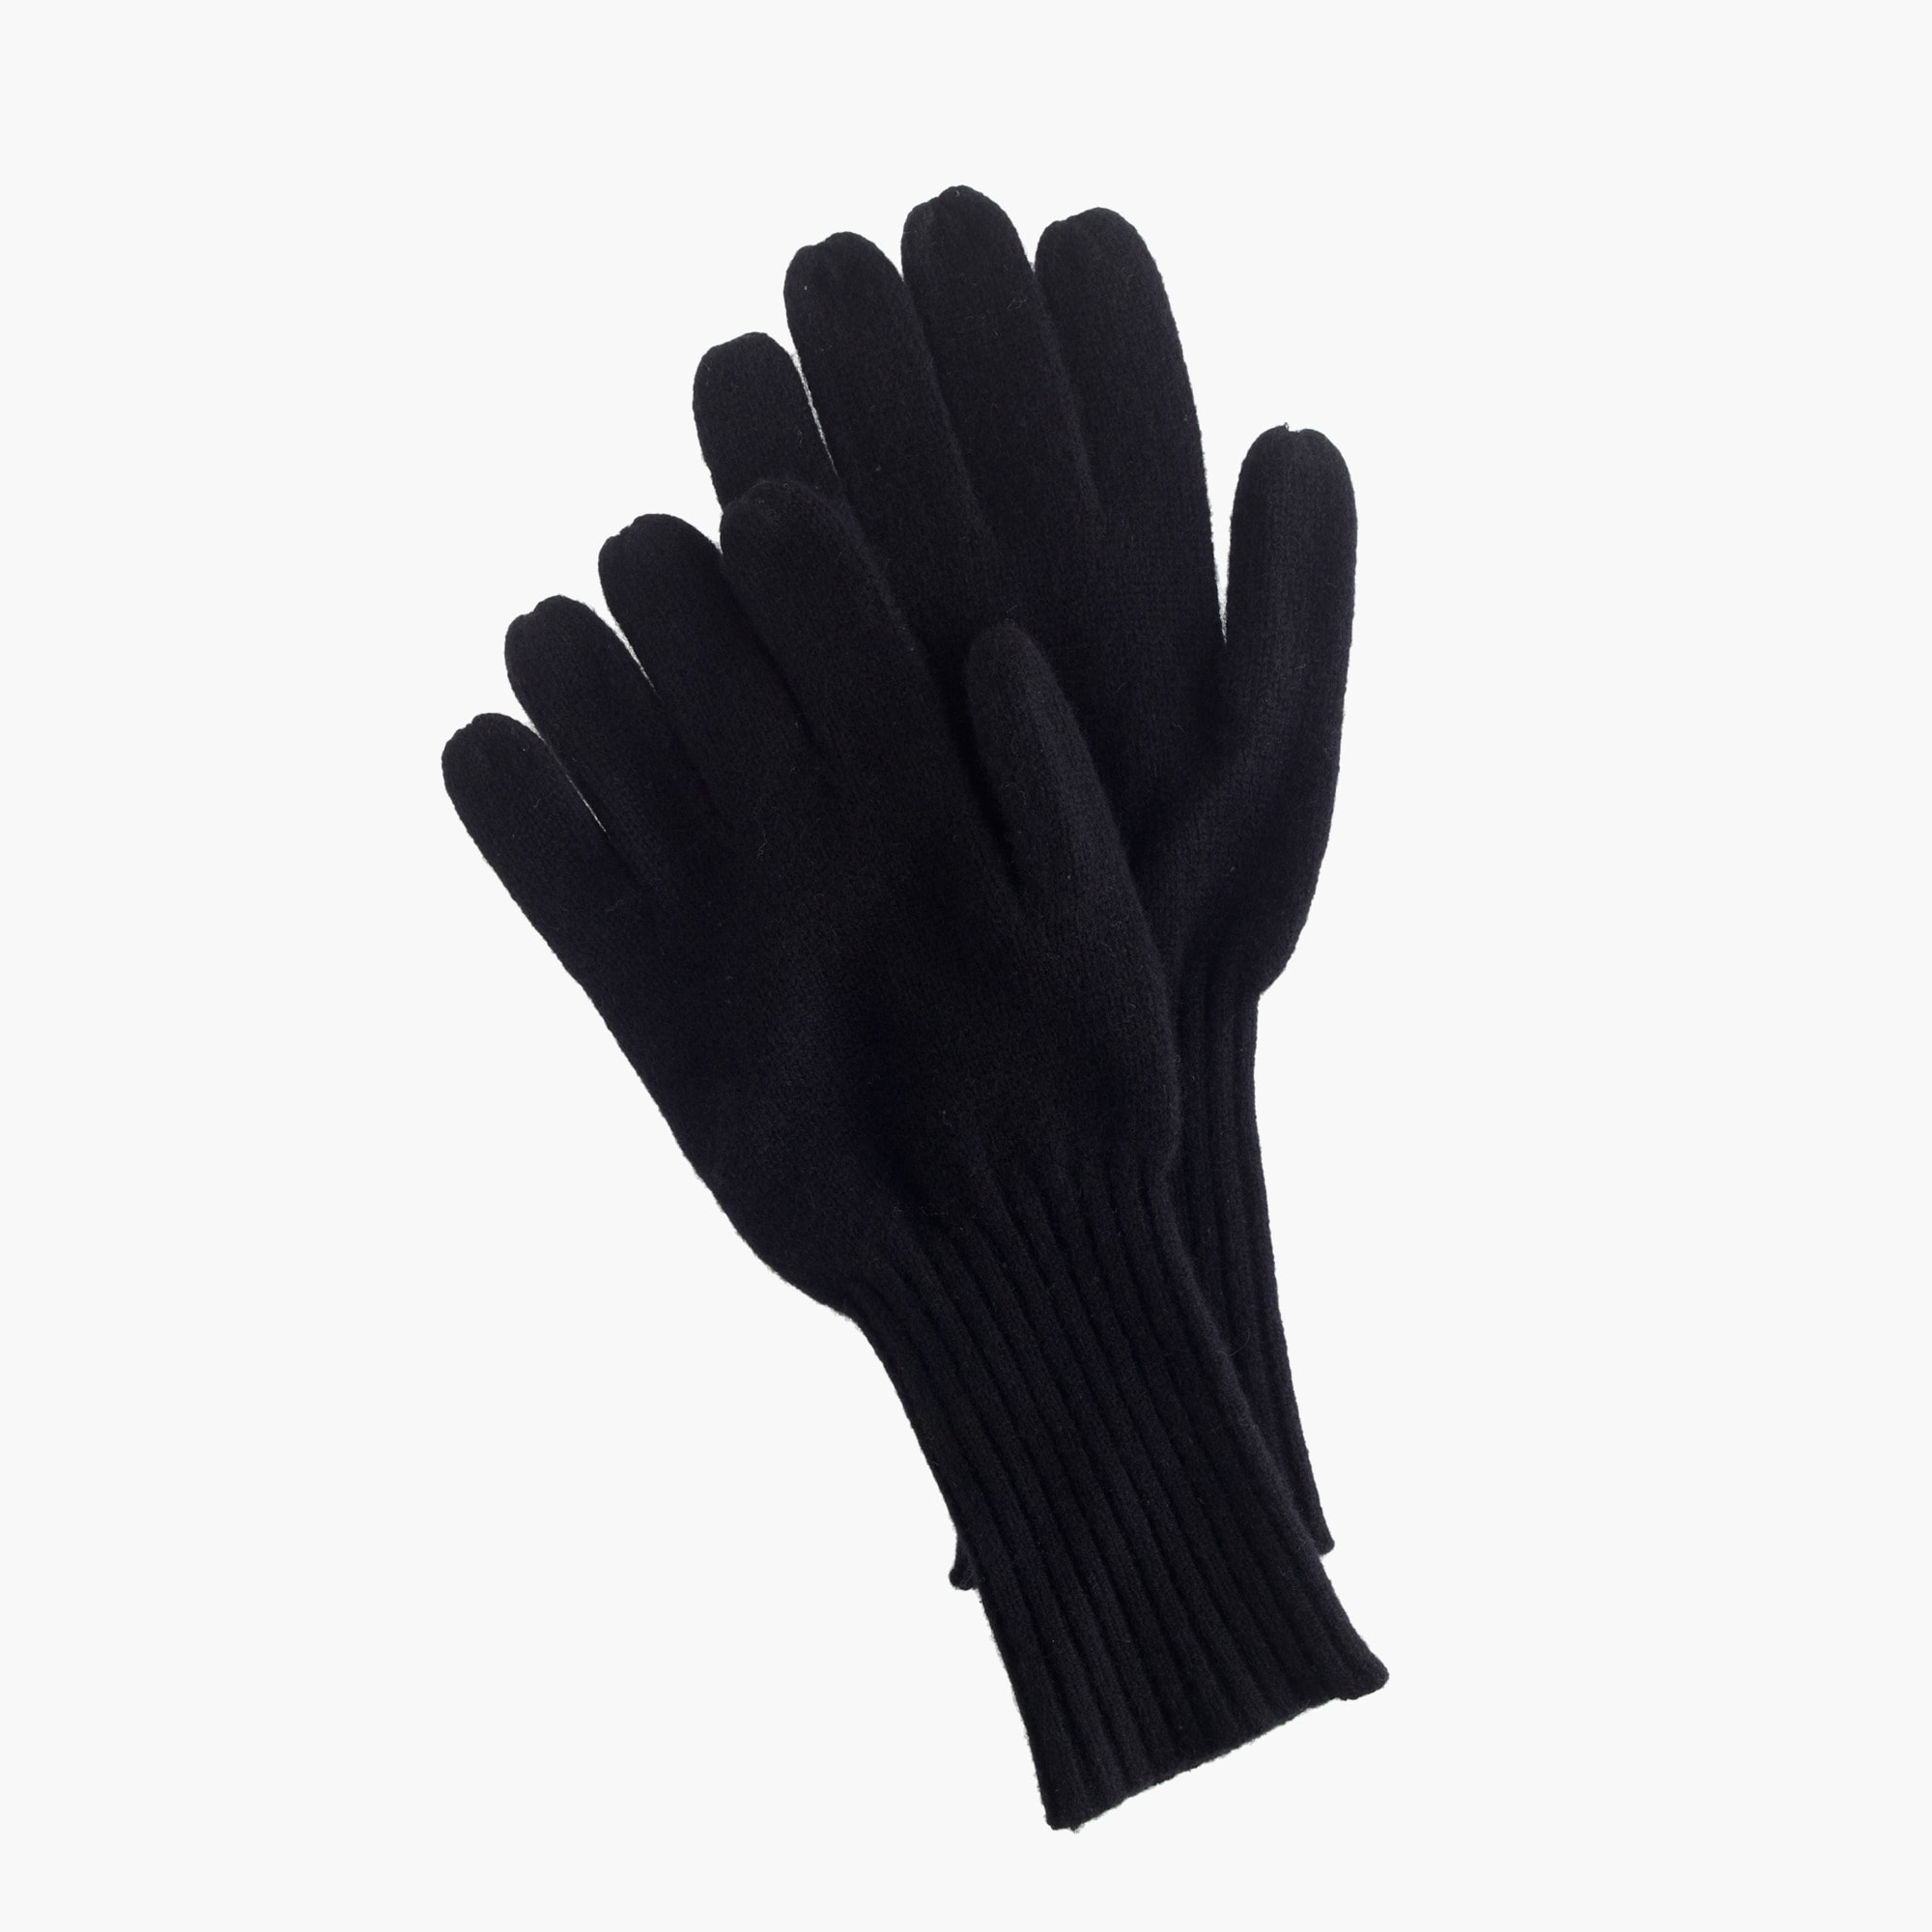 Gloves in everyday cashmere